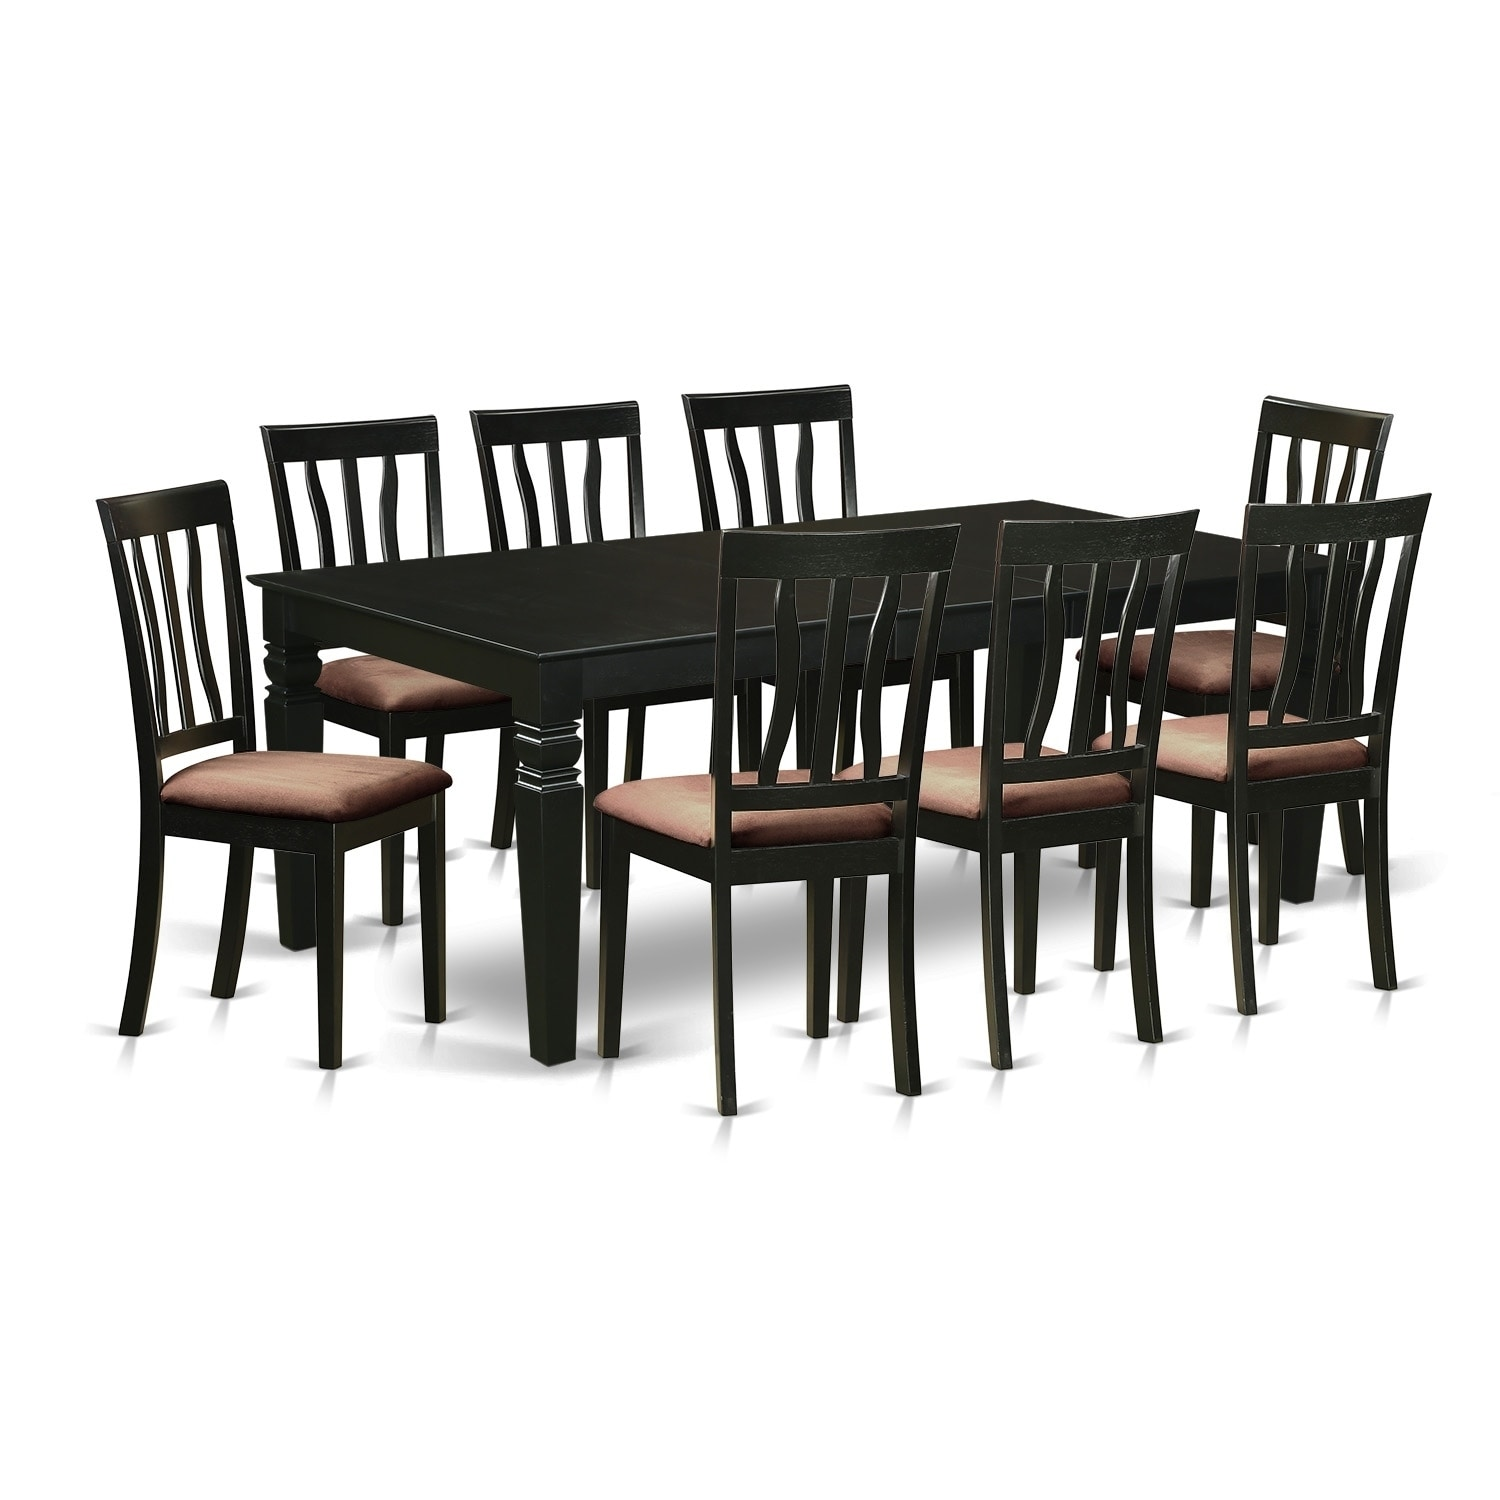 LGAN9-BLK 9 Pc Dining Room set with a Table and 8 Chairs